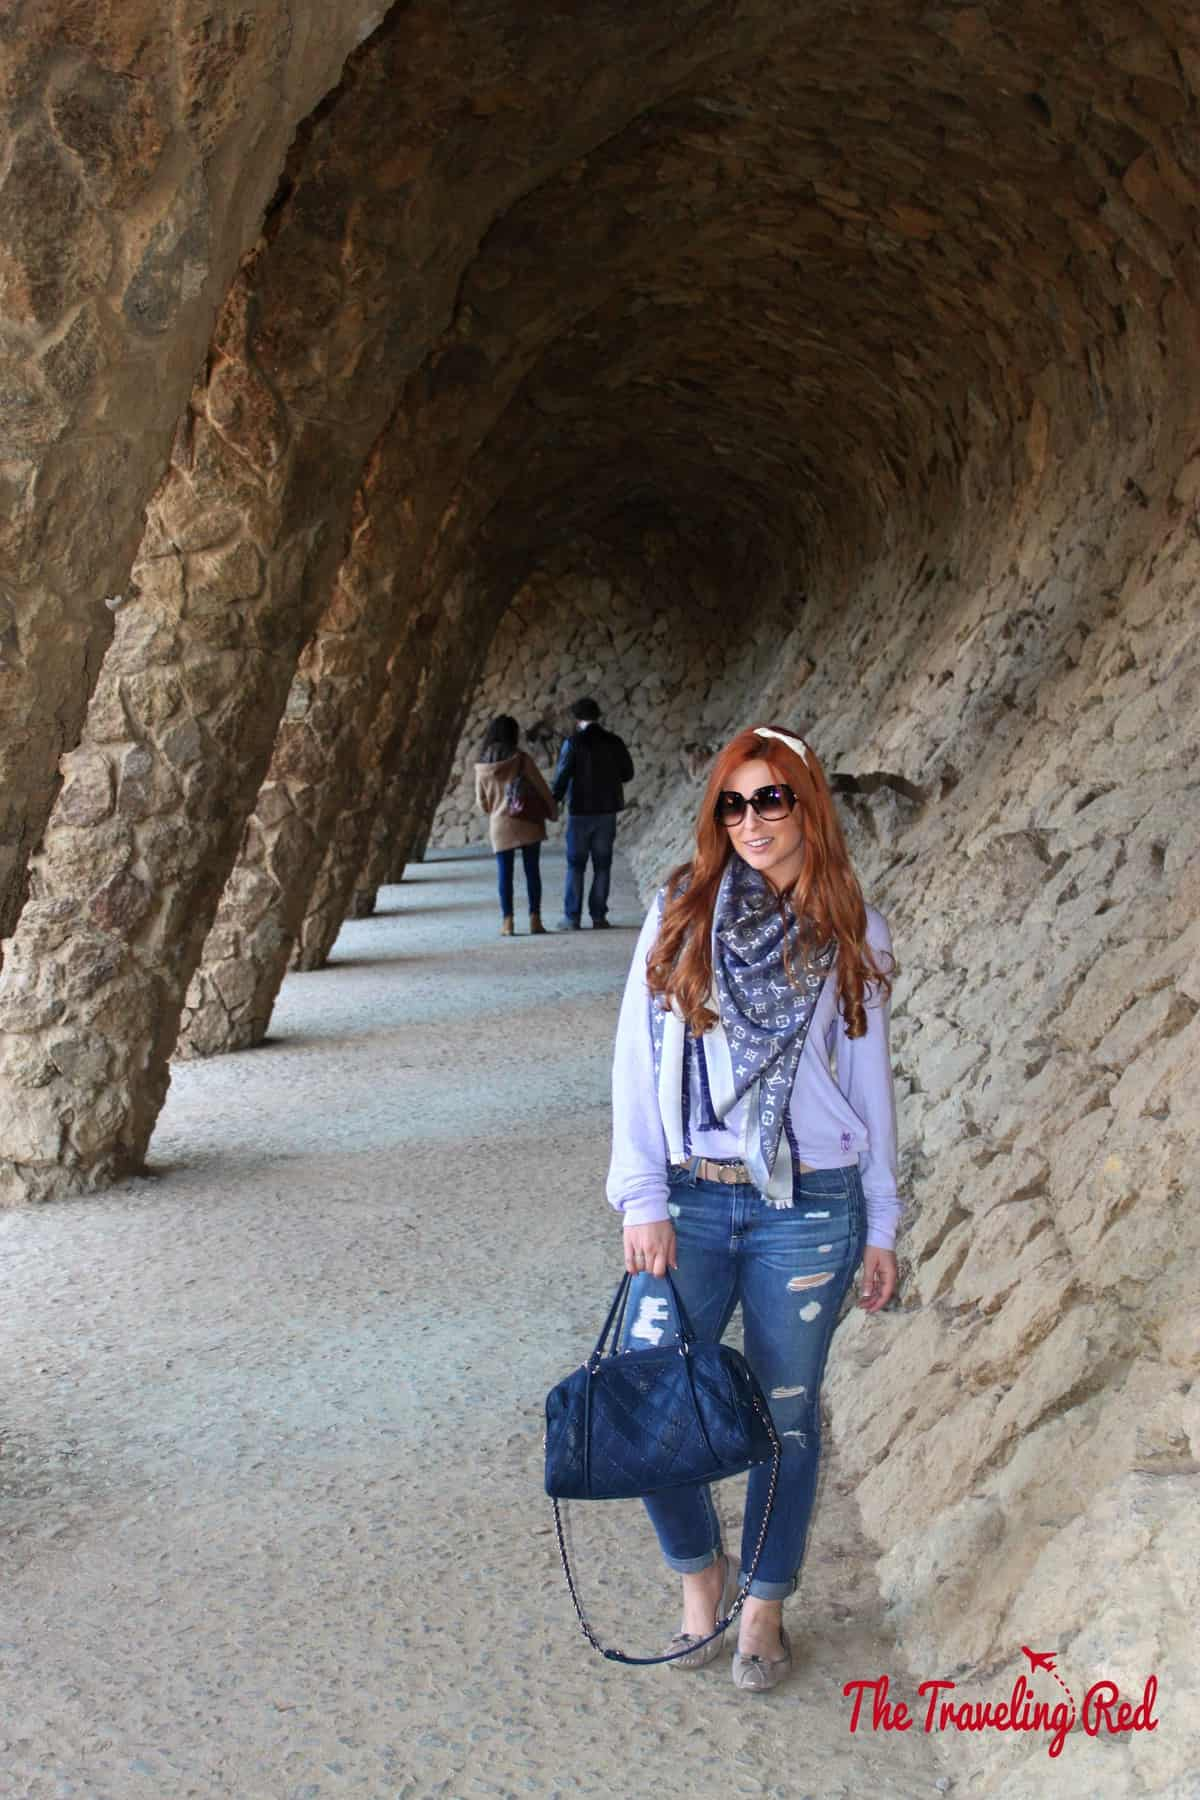 The Colonnaded Footpath in Parc Güell, the most famous park in Barcelona, Spain.